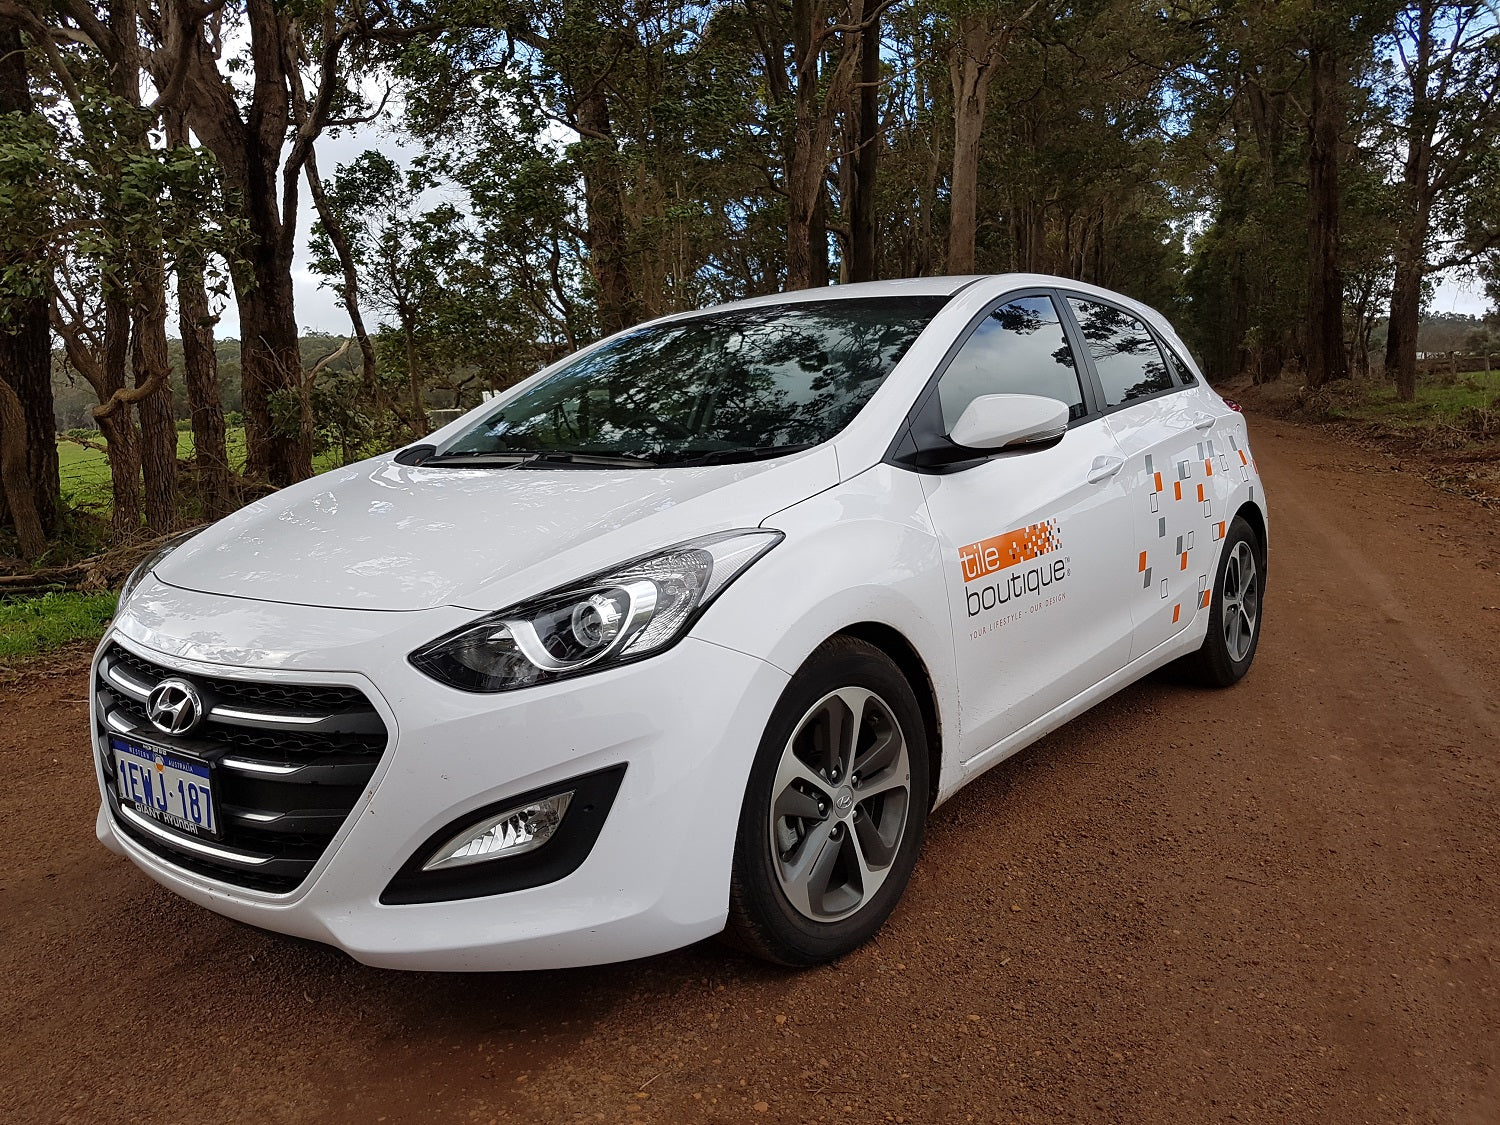 Newly branded Tile Boutique Cars